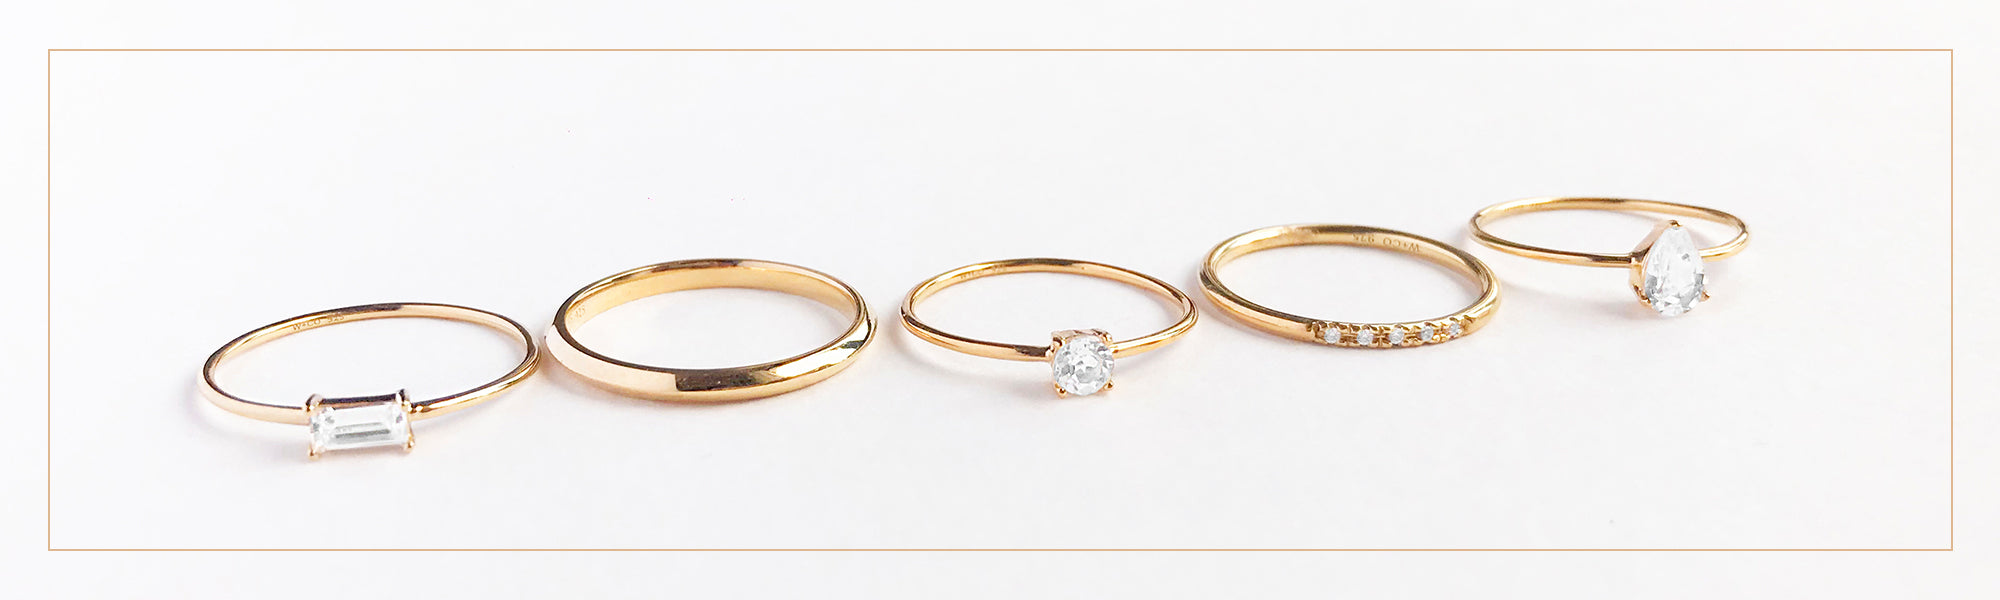 Trend Alert: Pear Cut Engagement Rings